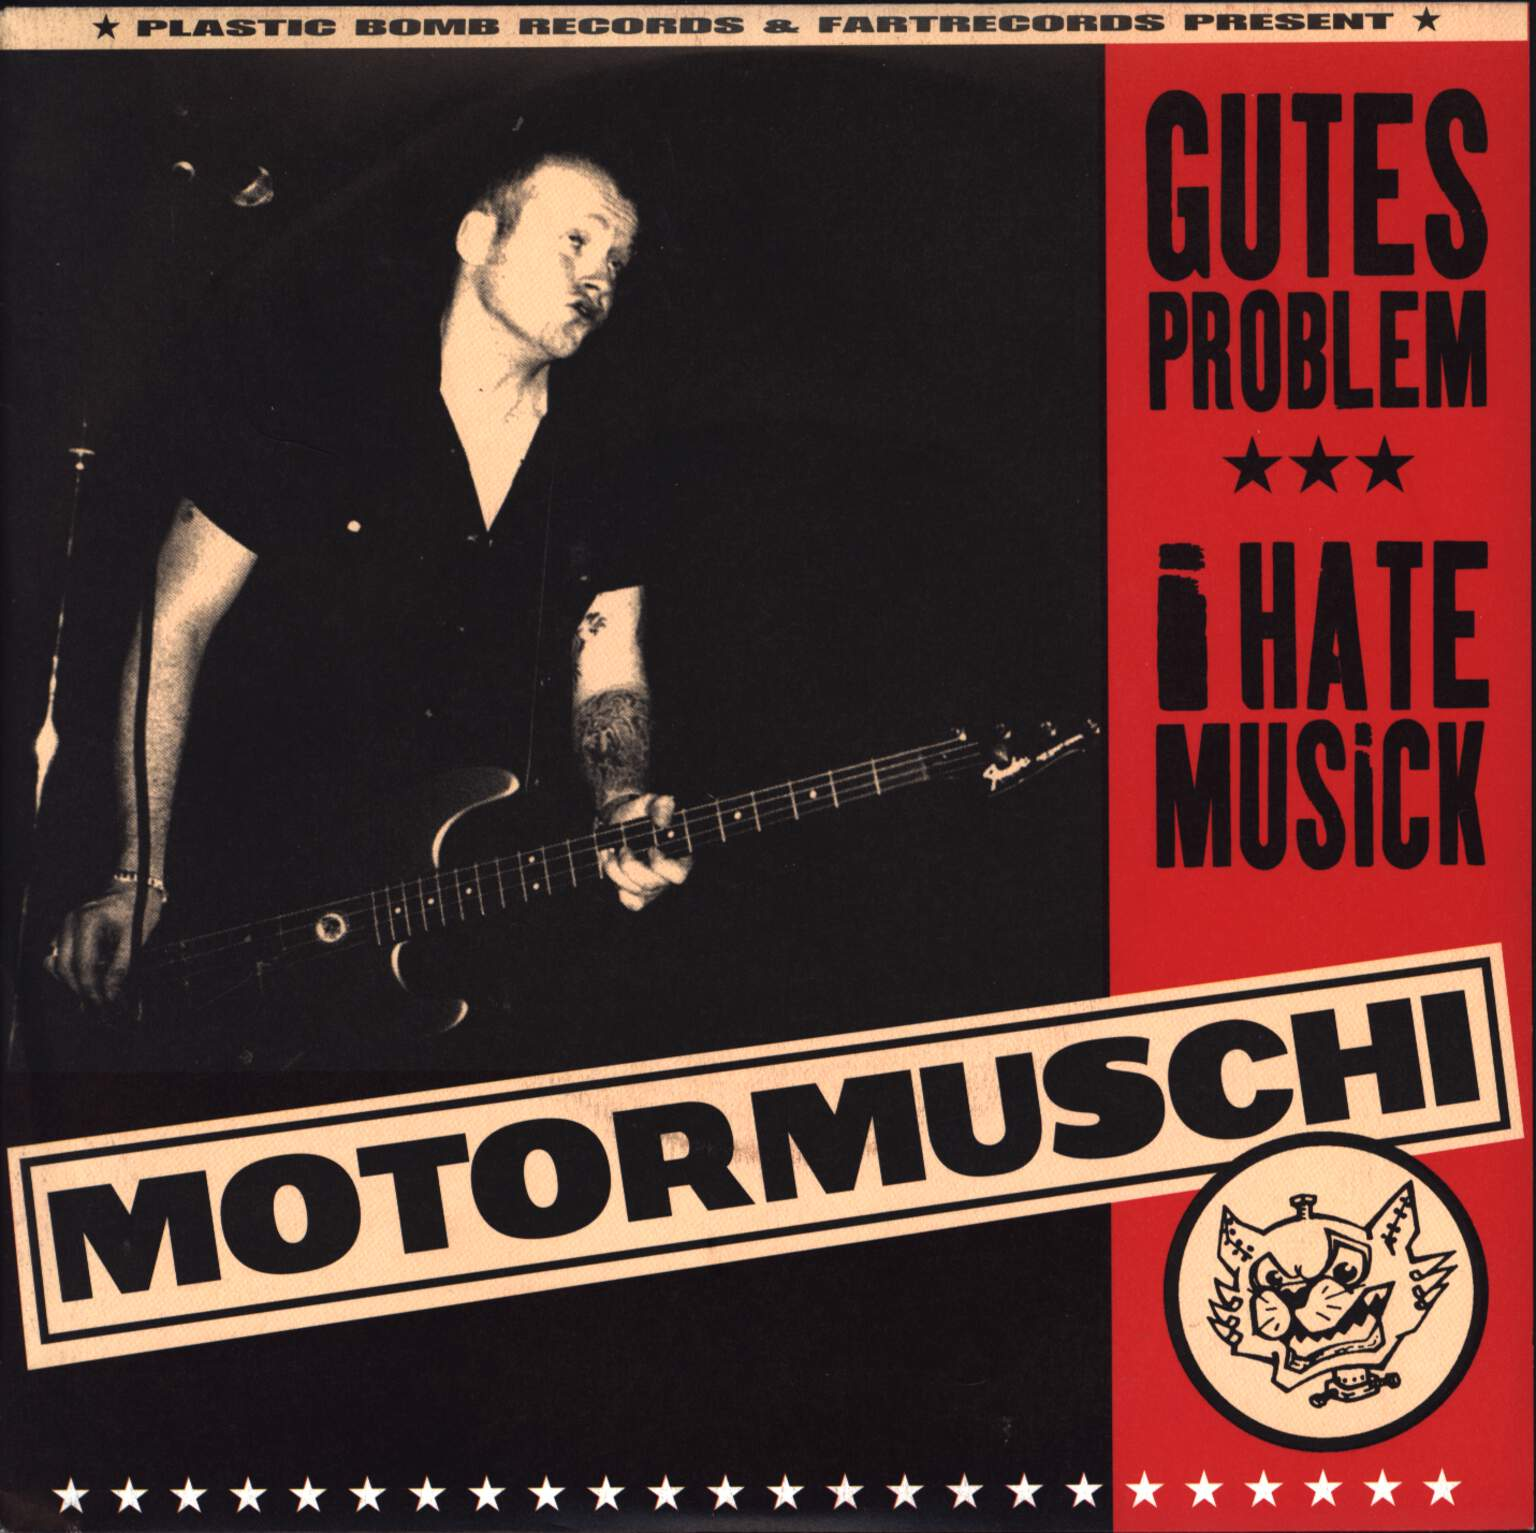 "Motormuschi: Gutes Problem/I Hate Musick, 7"" Single (Vinyl)"